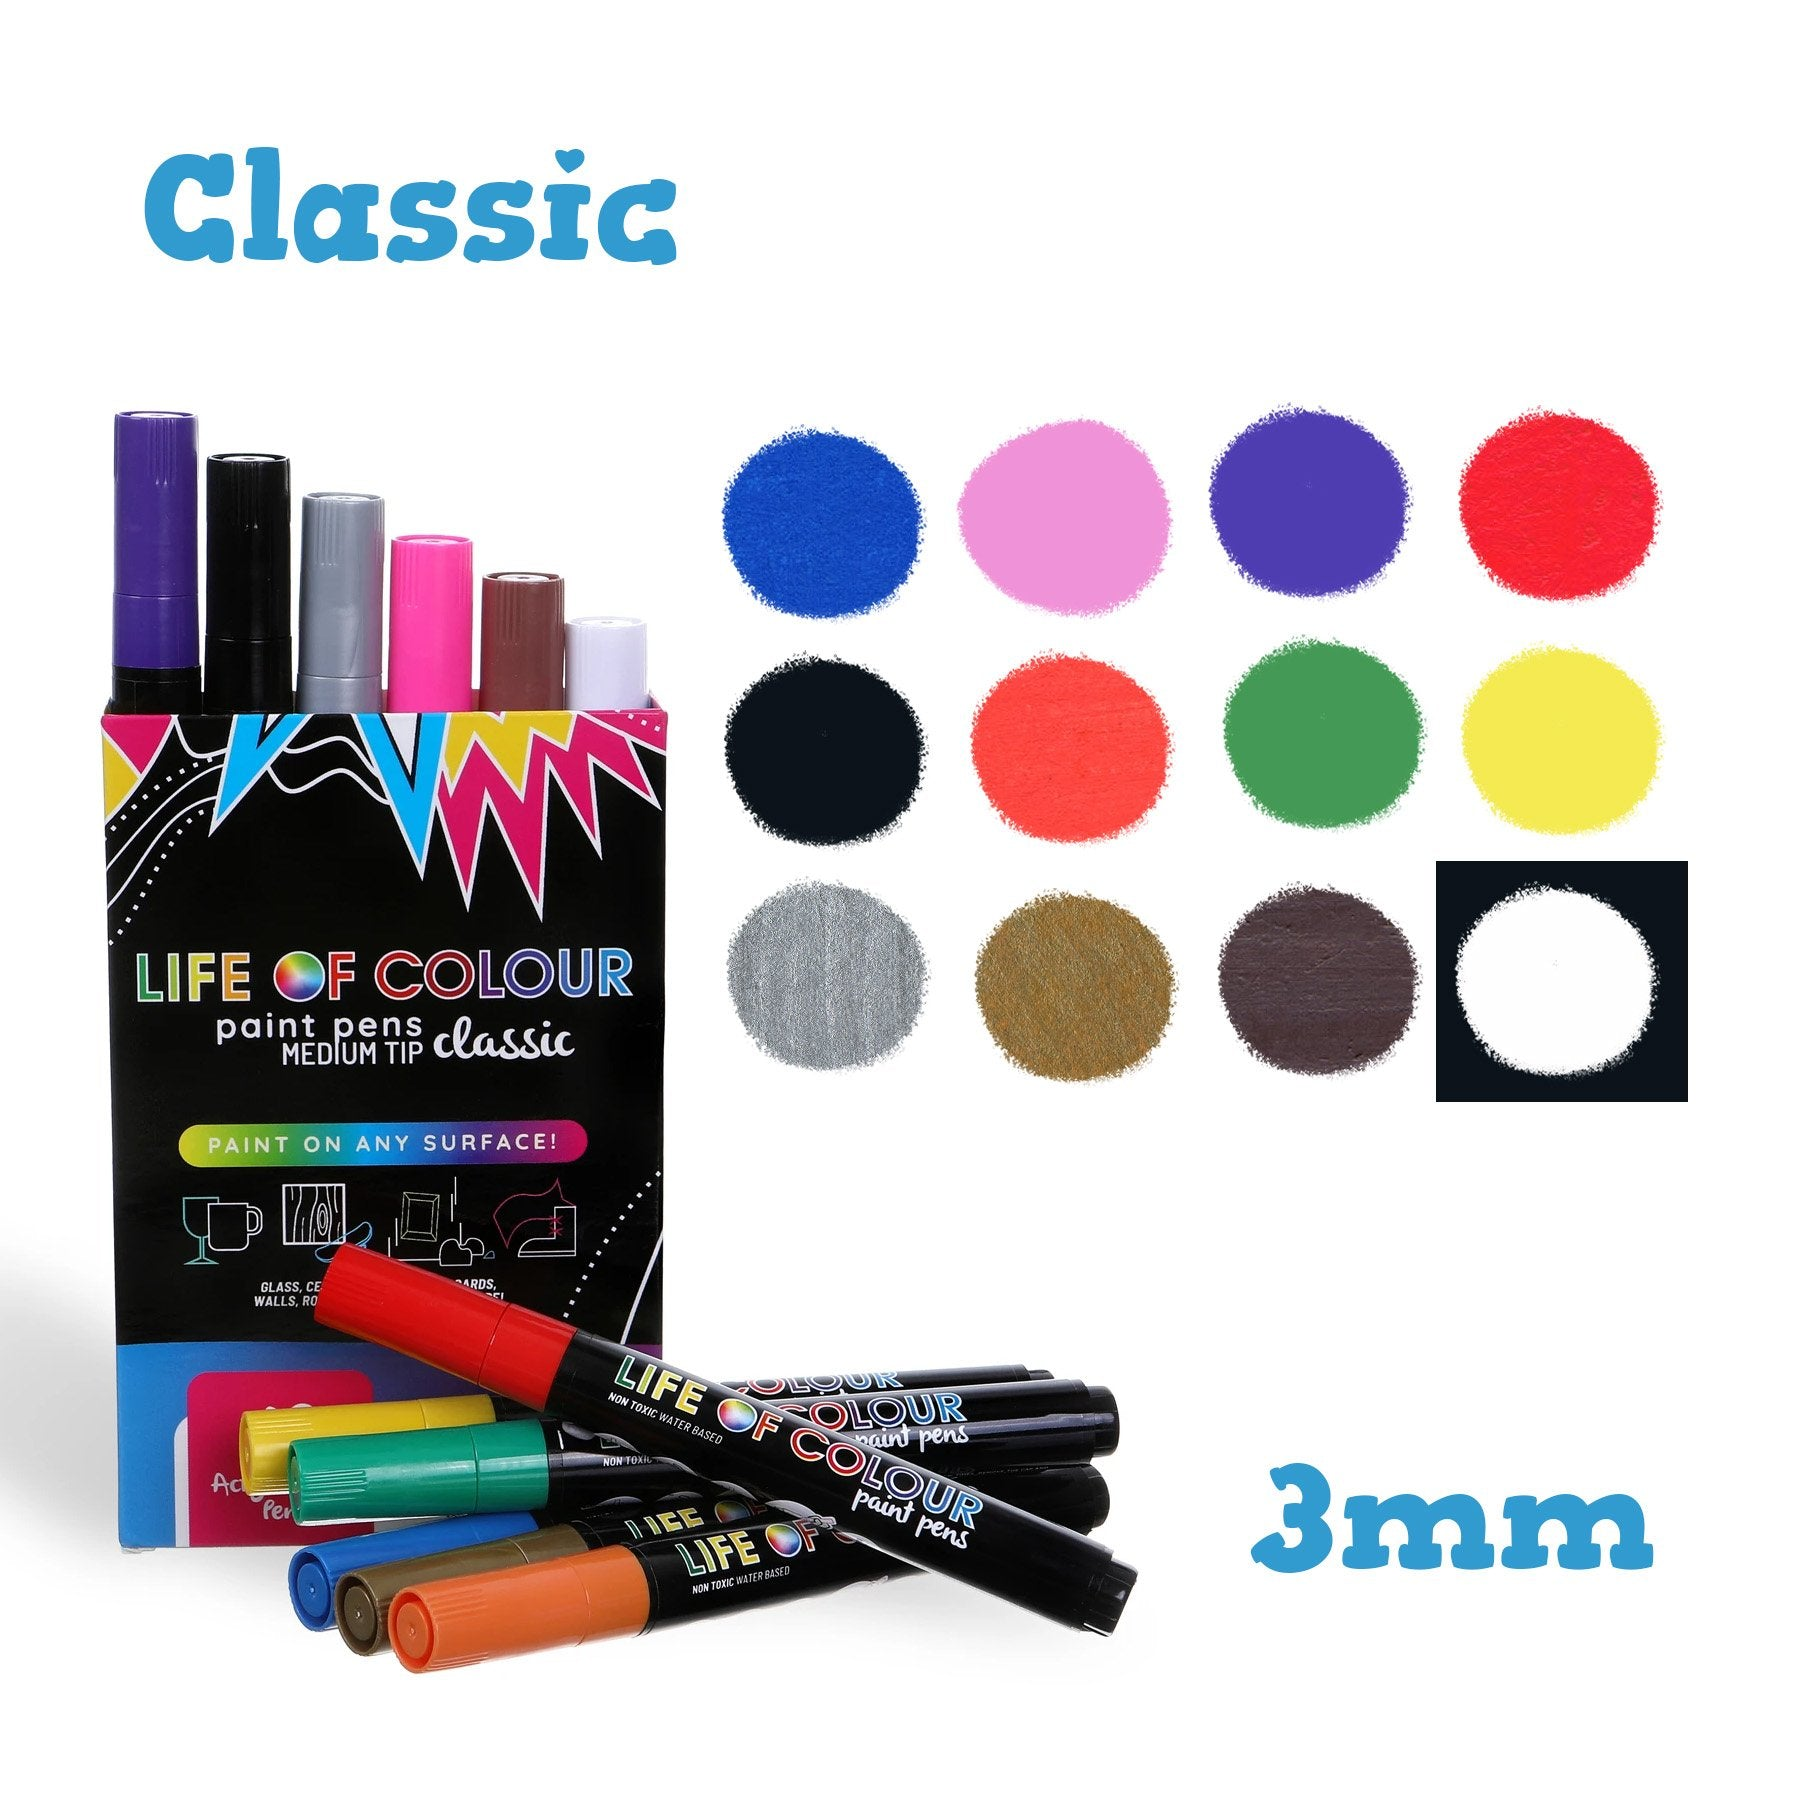 Classic Paint Pens - Medium Tip